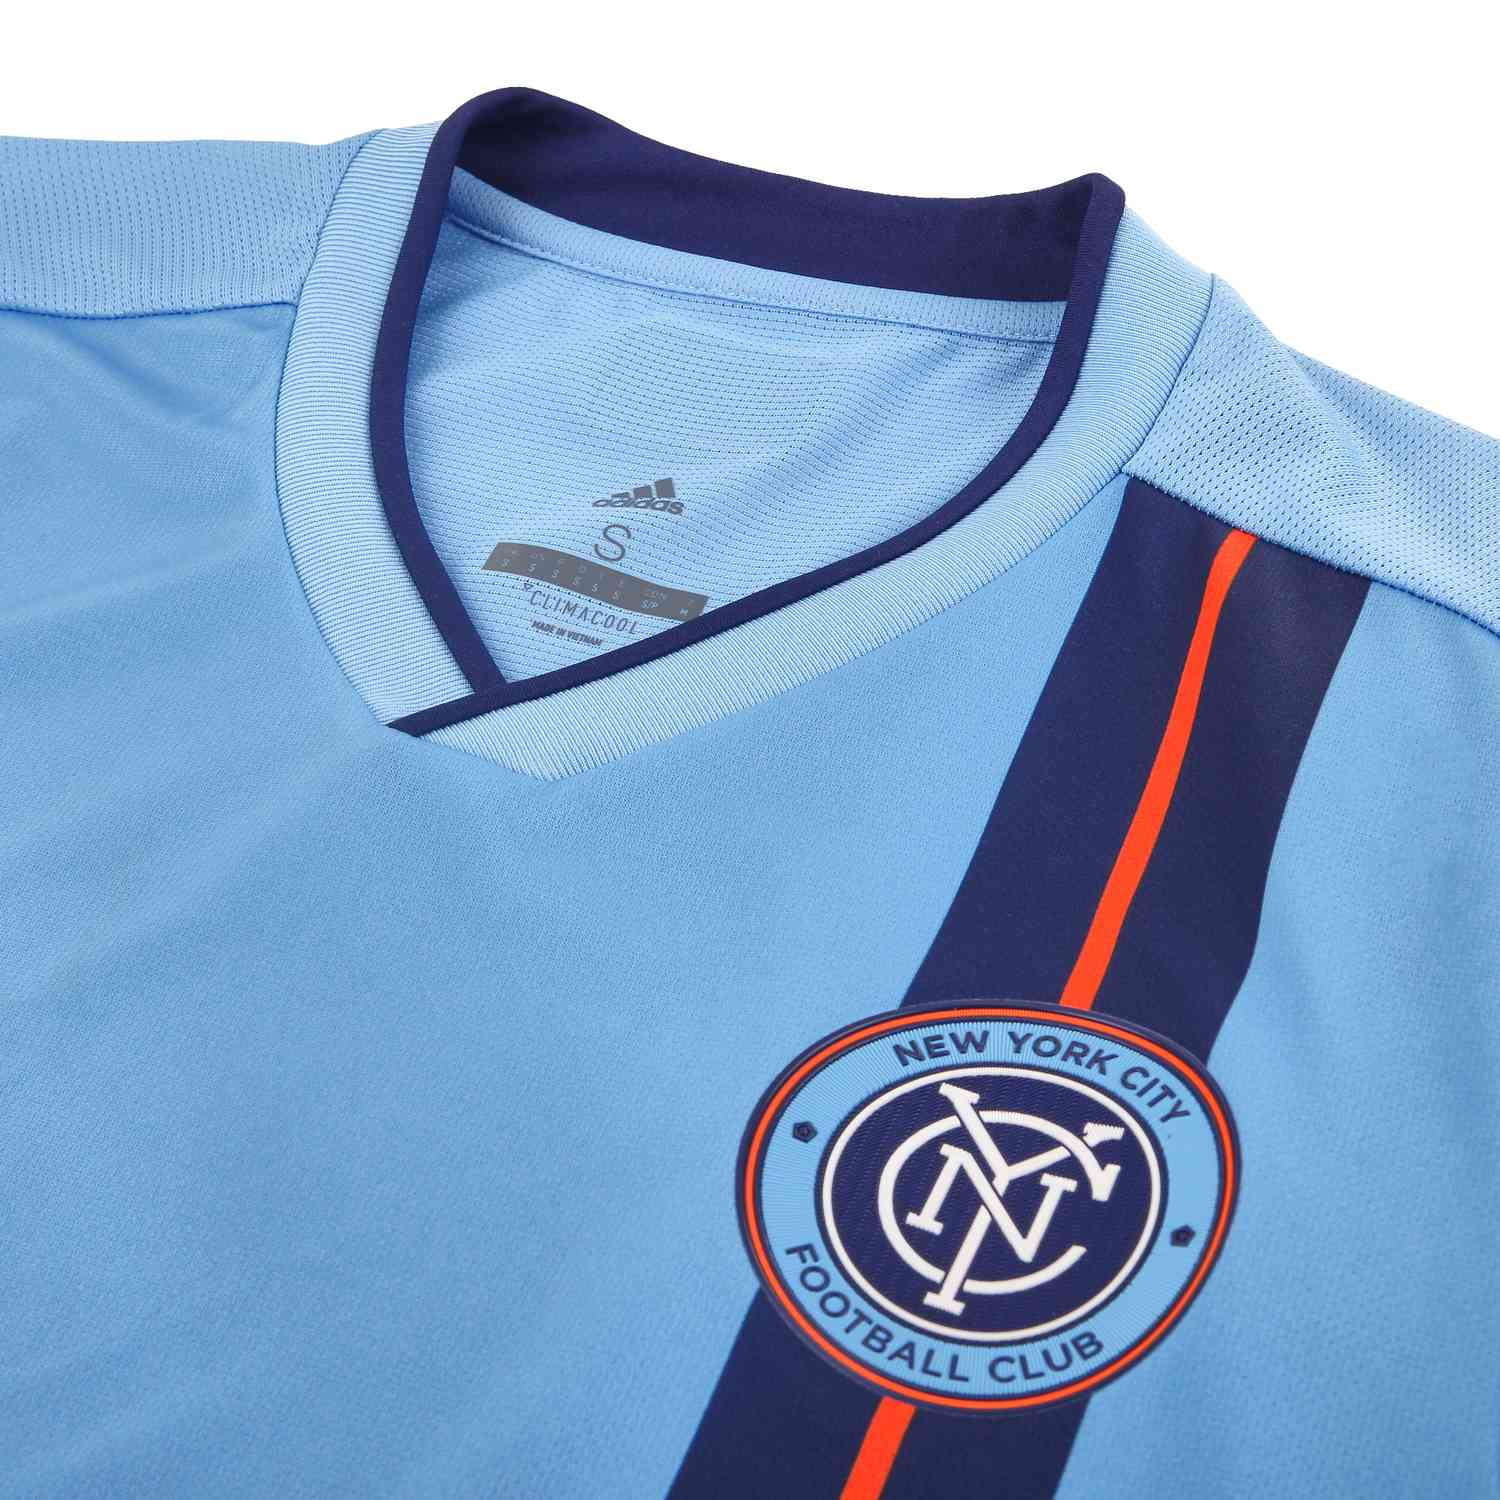 a791b7a2b 2019 adidas NYCFC Home Authentic Jersey - SoccerPro